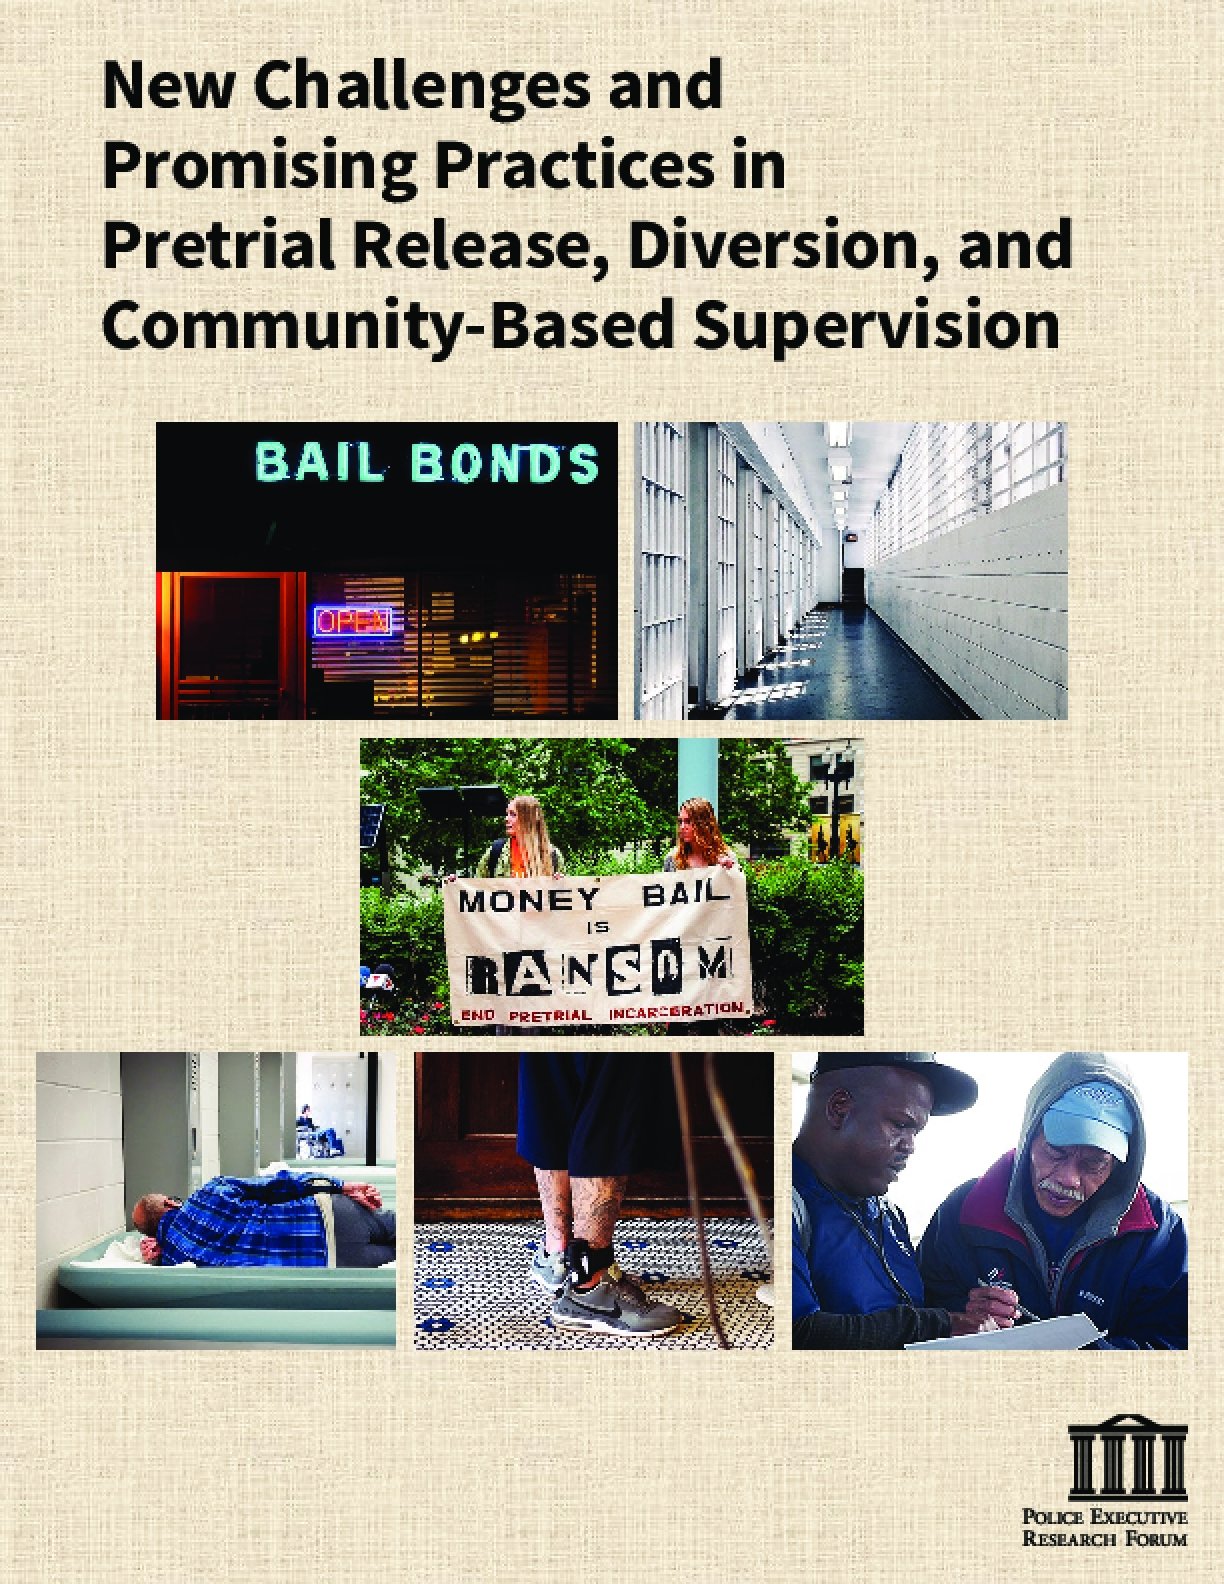 New Challenges and Promising Practices in Pretrial Release, Diversion, and Community-Based Supervision